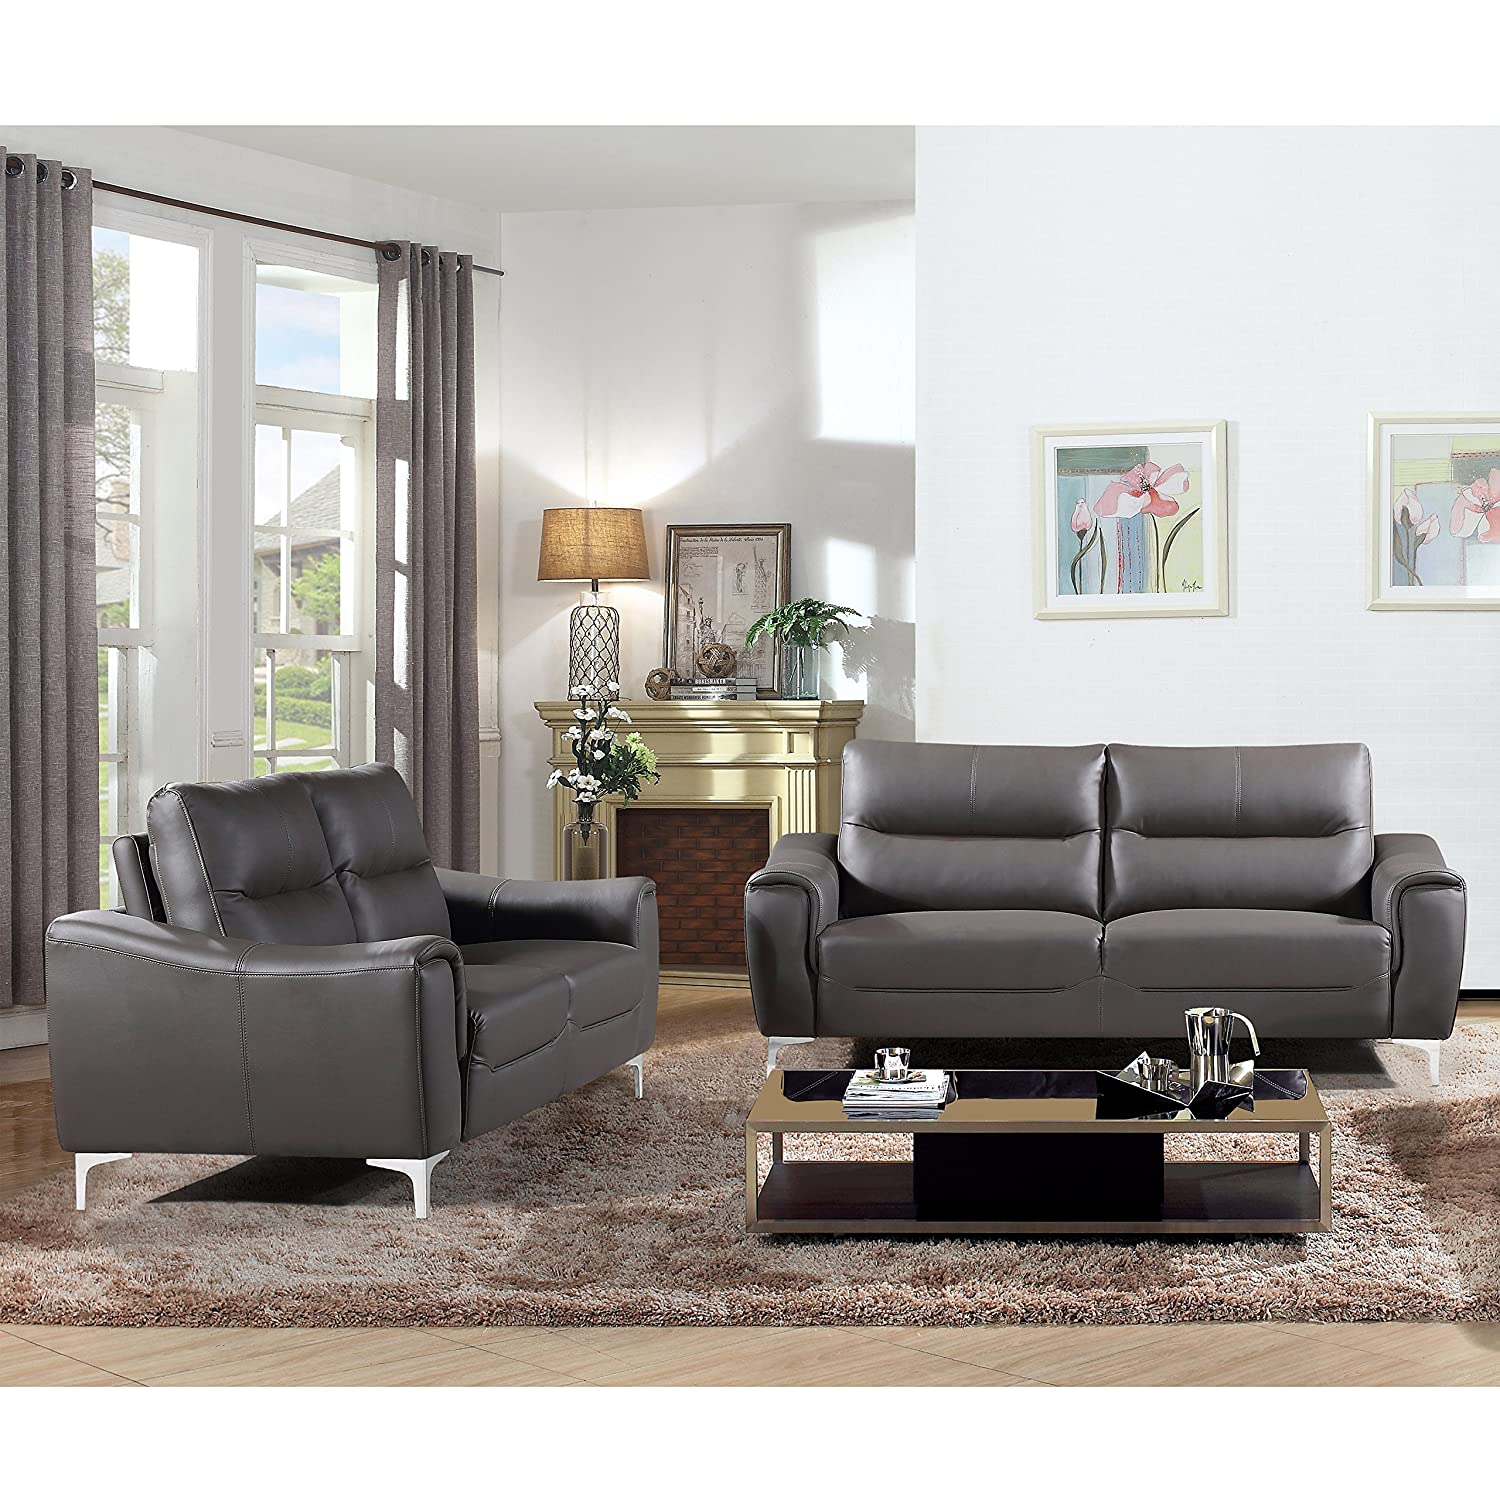 AC Pacific Anna Collection Contemporary Leather Upholstered Electric Recliner Chair With Adjustable Headrest